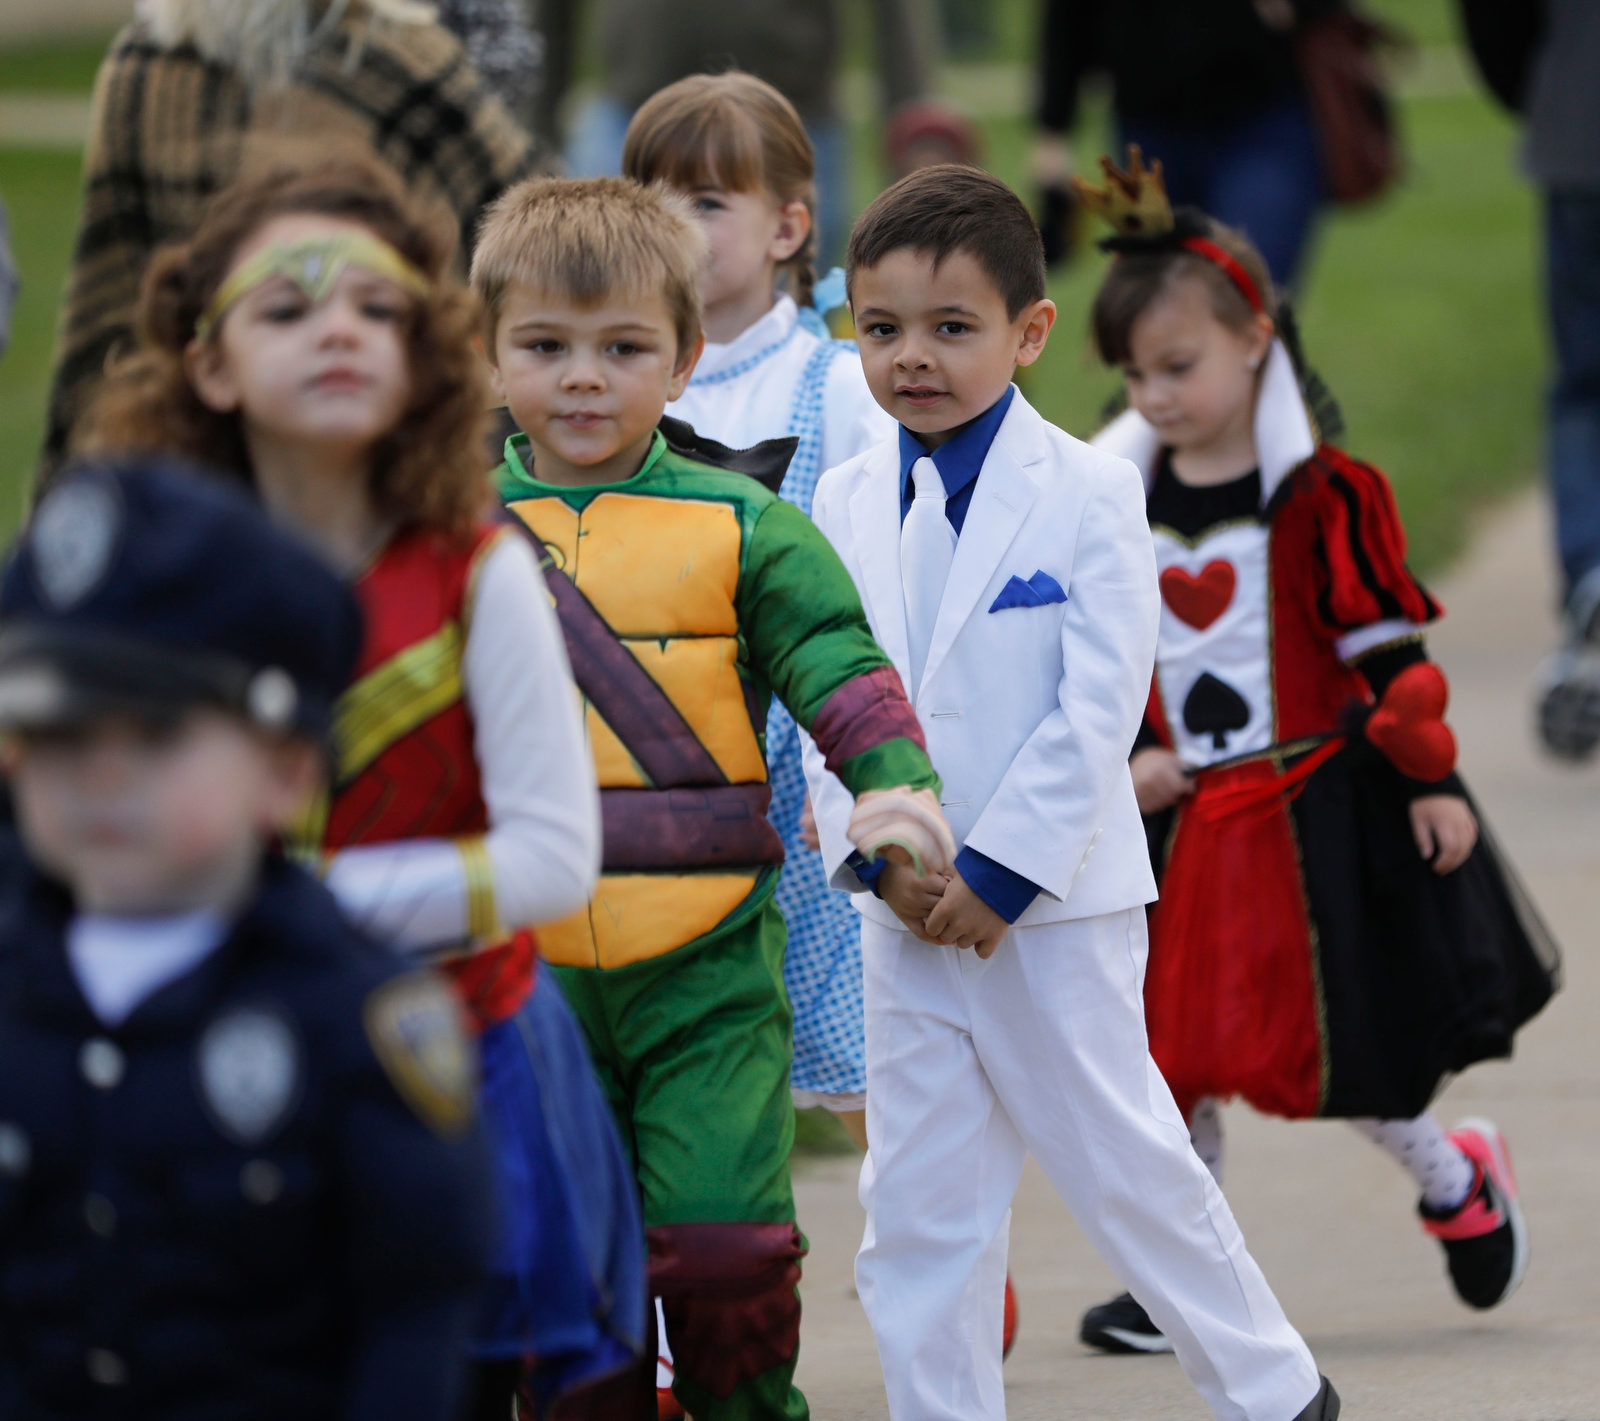 Children in the universal pre-K and kindergarten classes at Lew-Port Primary Education Center parade around the school.